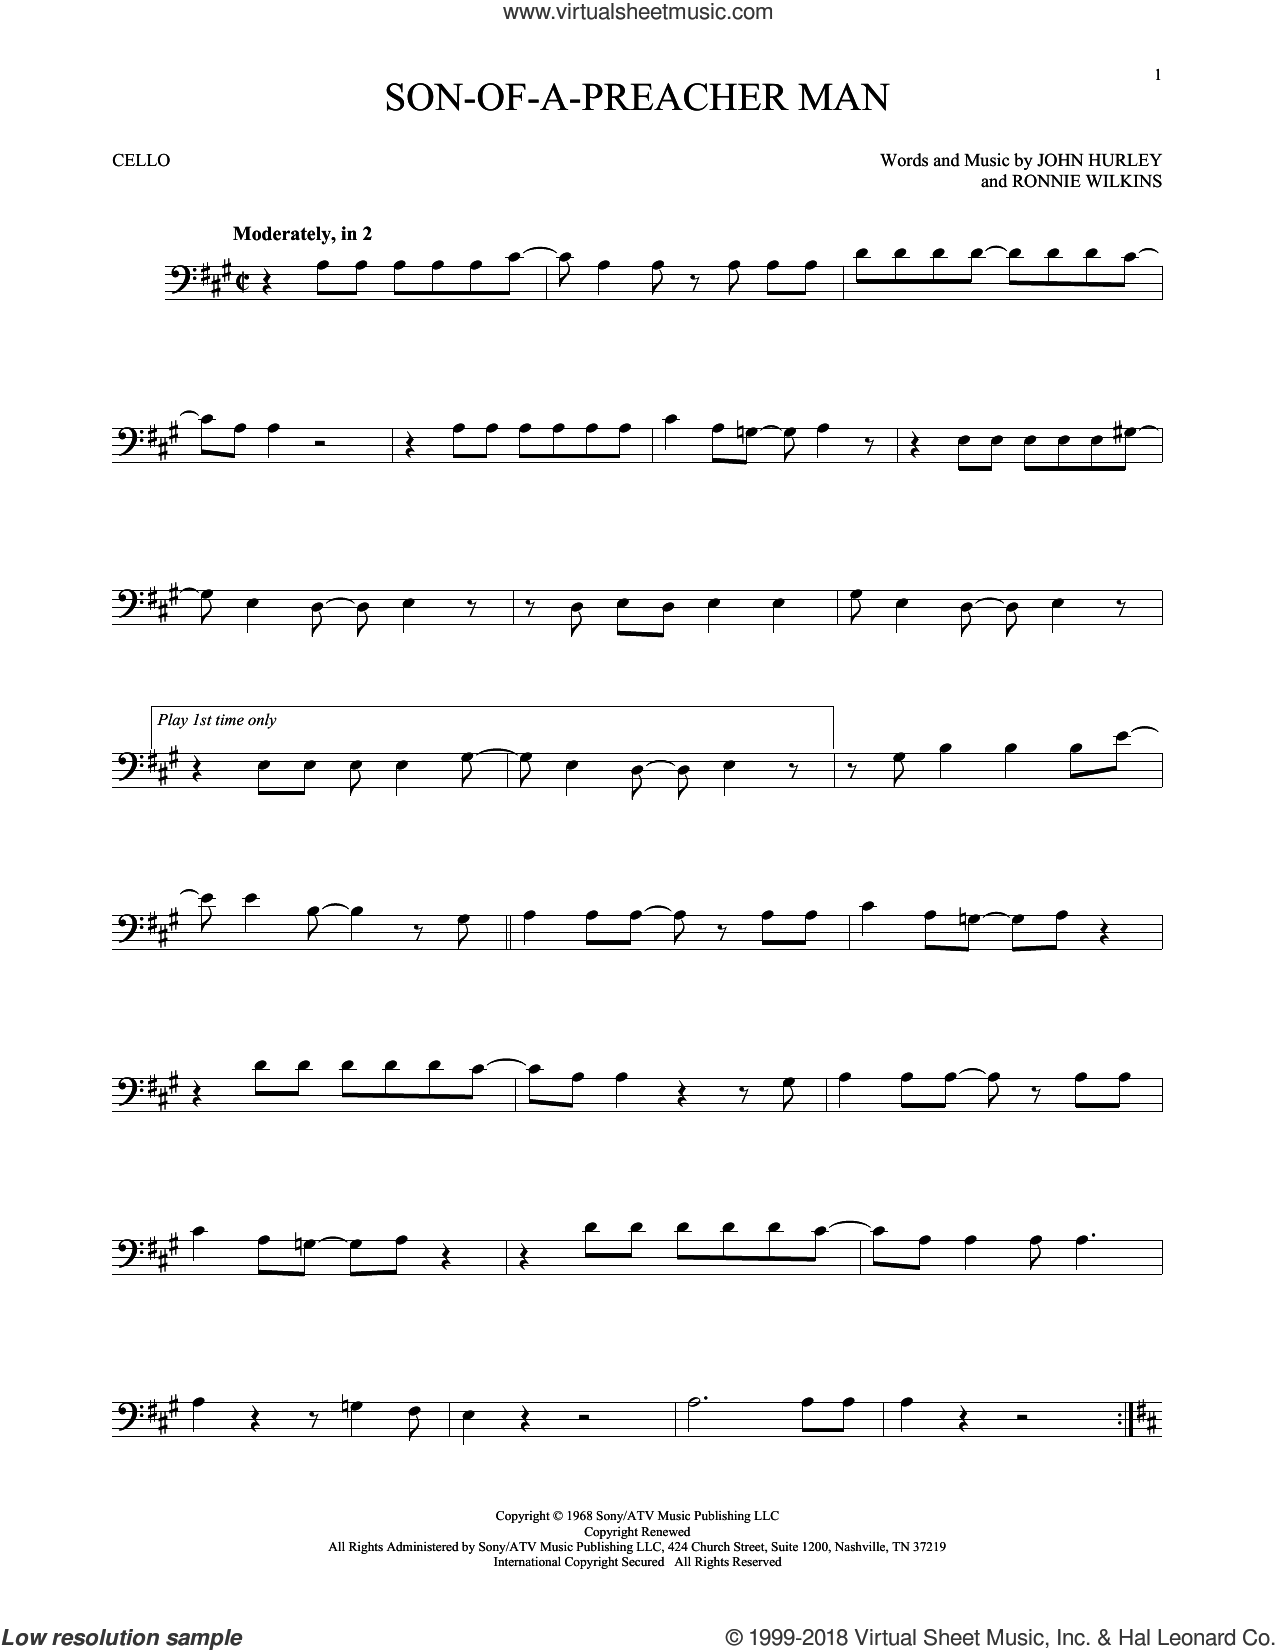 Son-Of-A-Preacher Man sheet music for cello solo by Dusty Springfield, John Hurley and Ronnie Wilkins, intermediate skill level